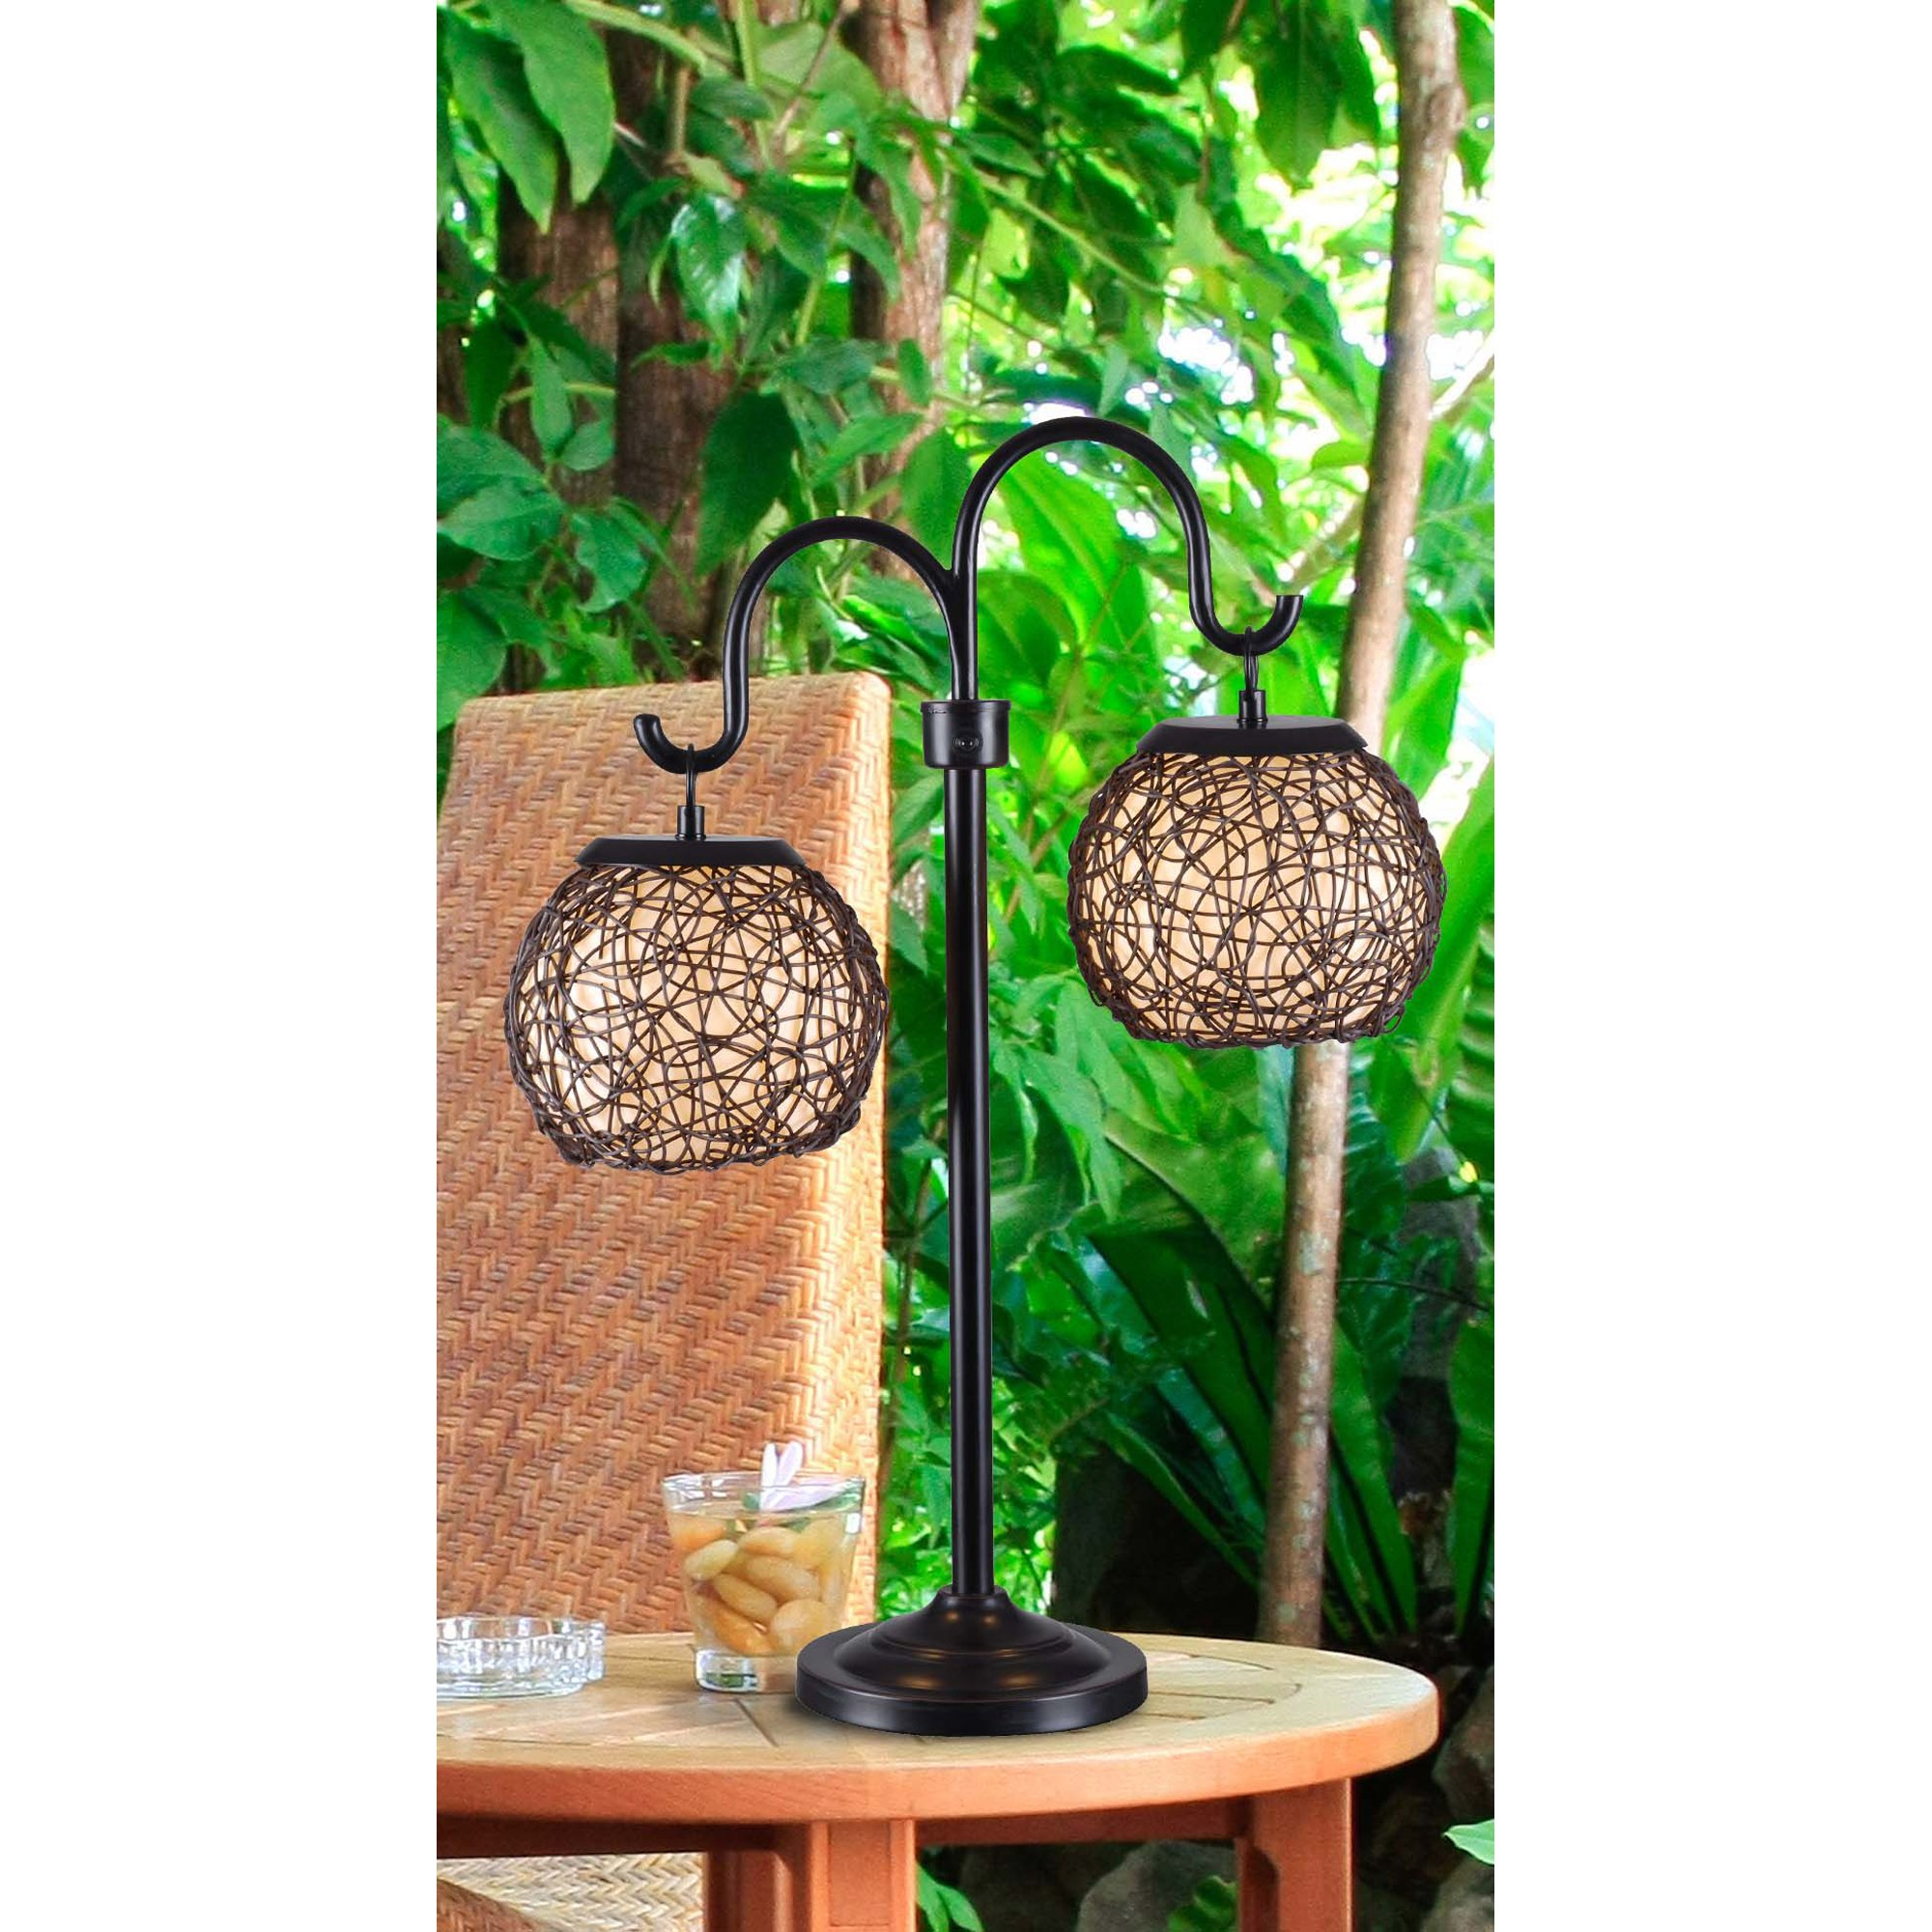 Kenroy Home 32245BRZ Castillo Outdoor Table Lamp, Bronze Finish by Kenroy Home (Image #2)